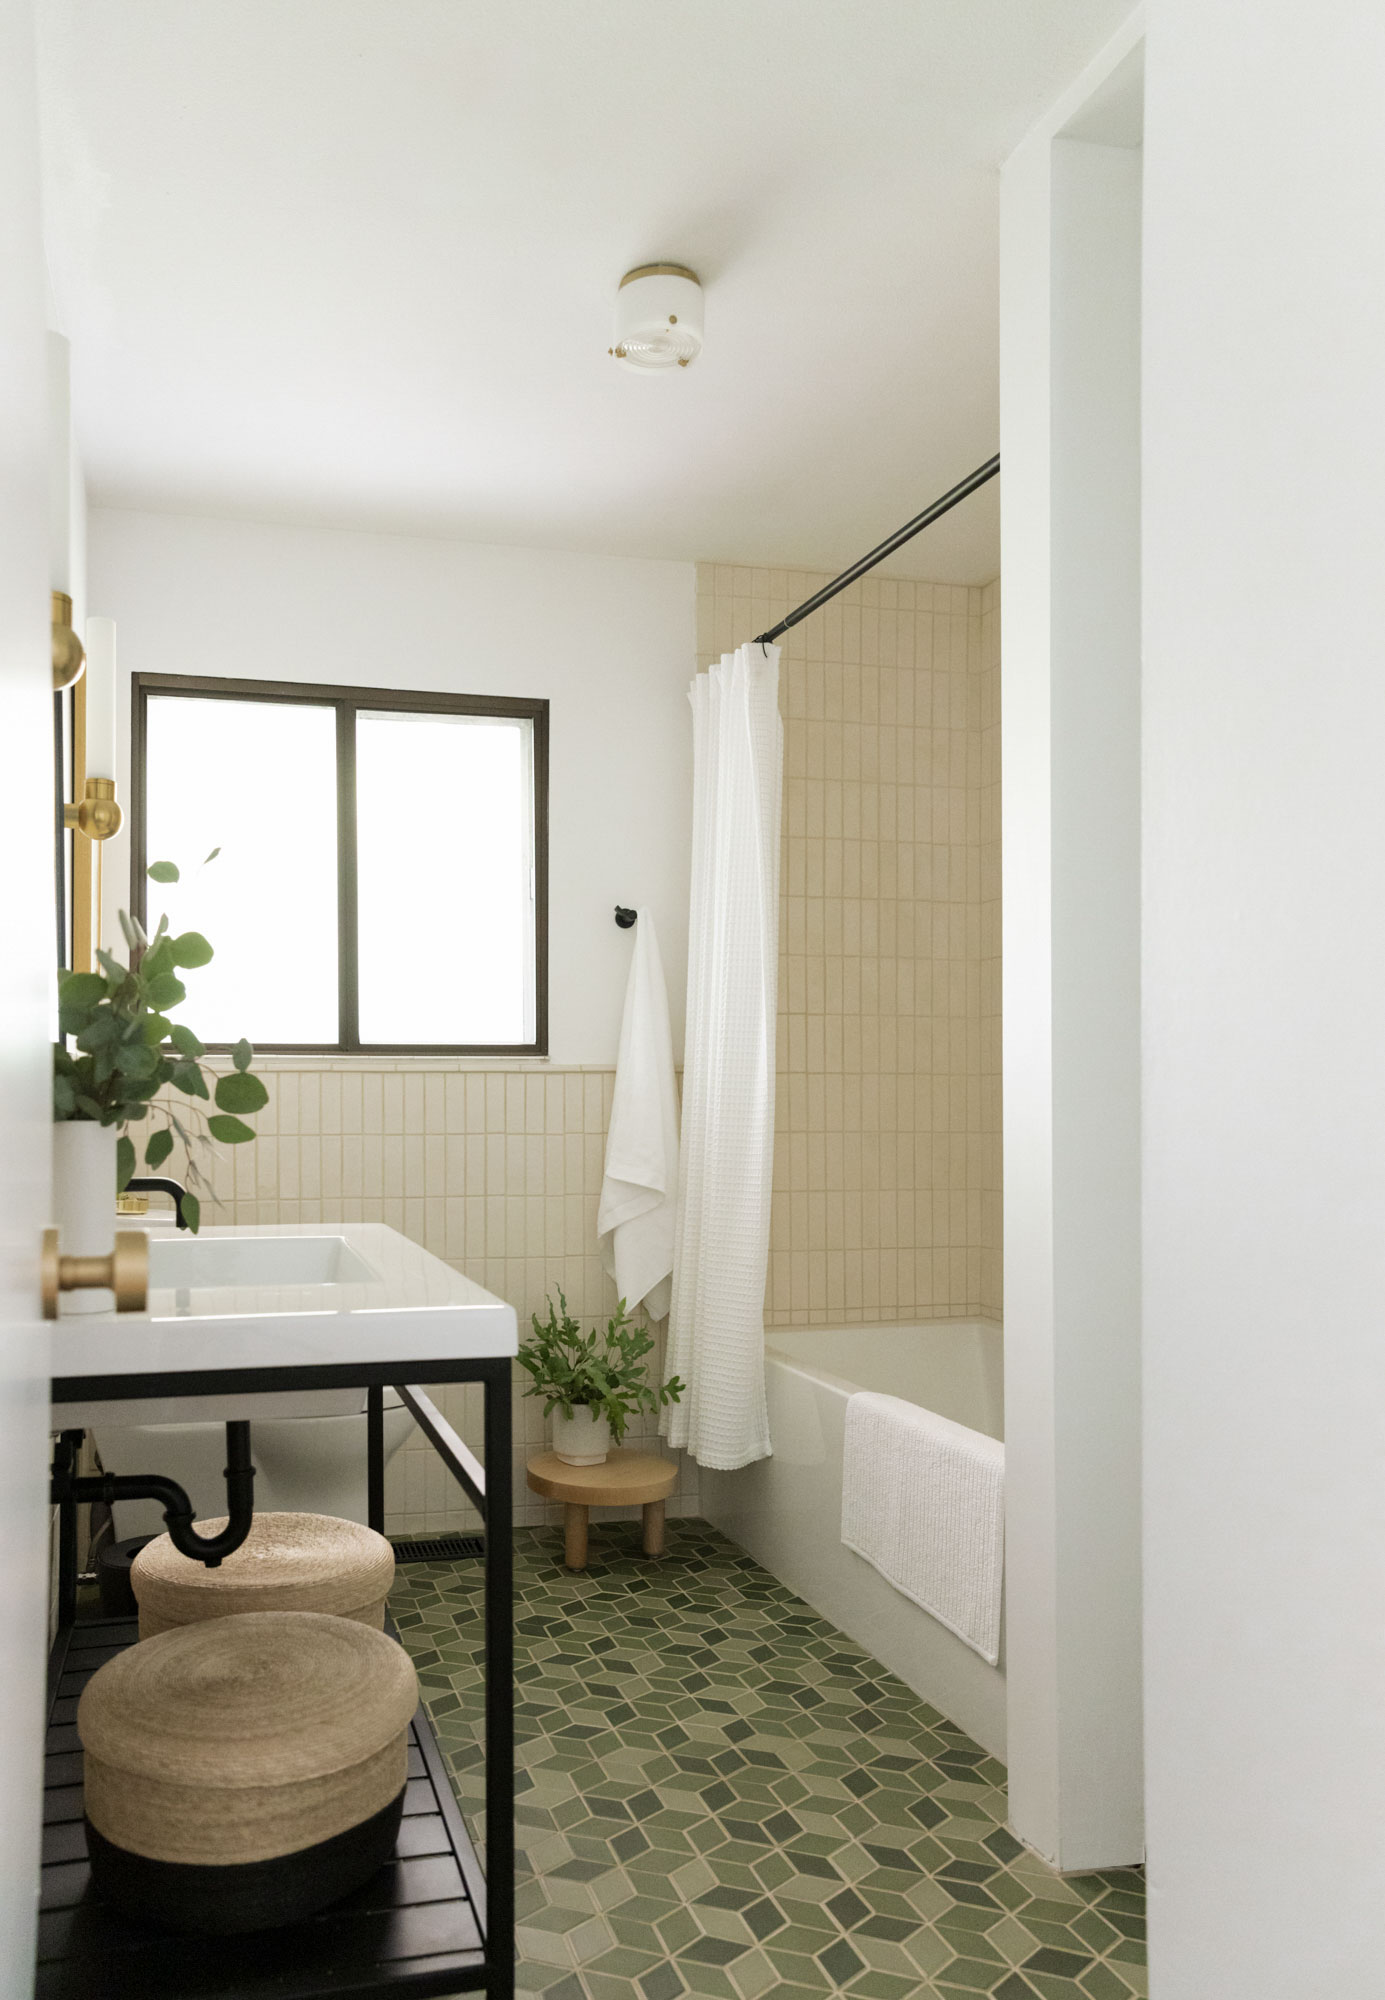 Pratt & Larson -  Custom Blend Tile - Green Variation  with custom matte black vanity